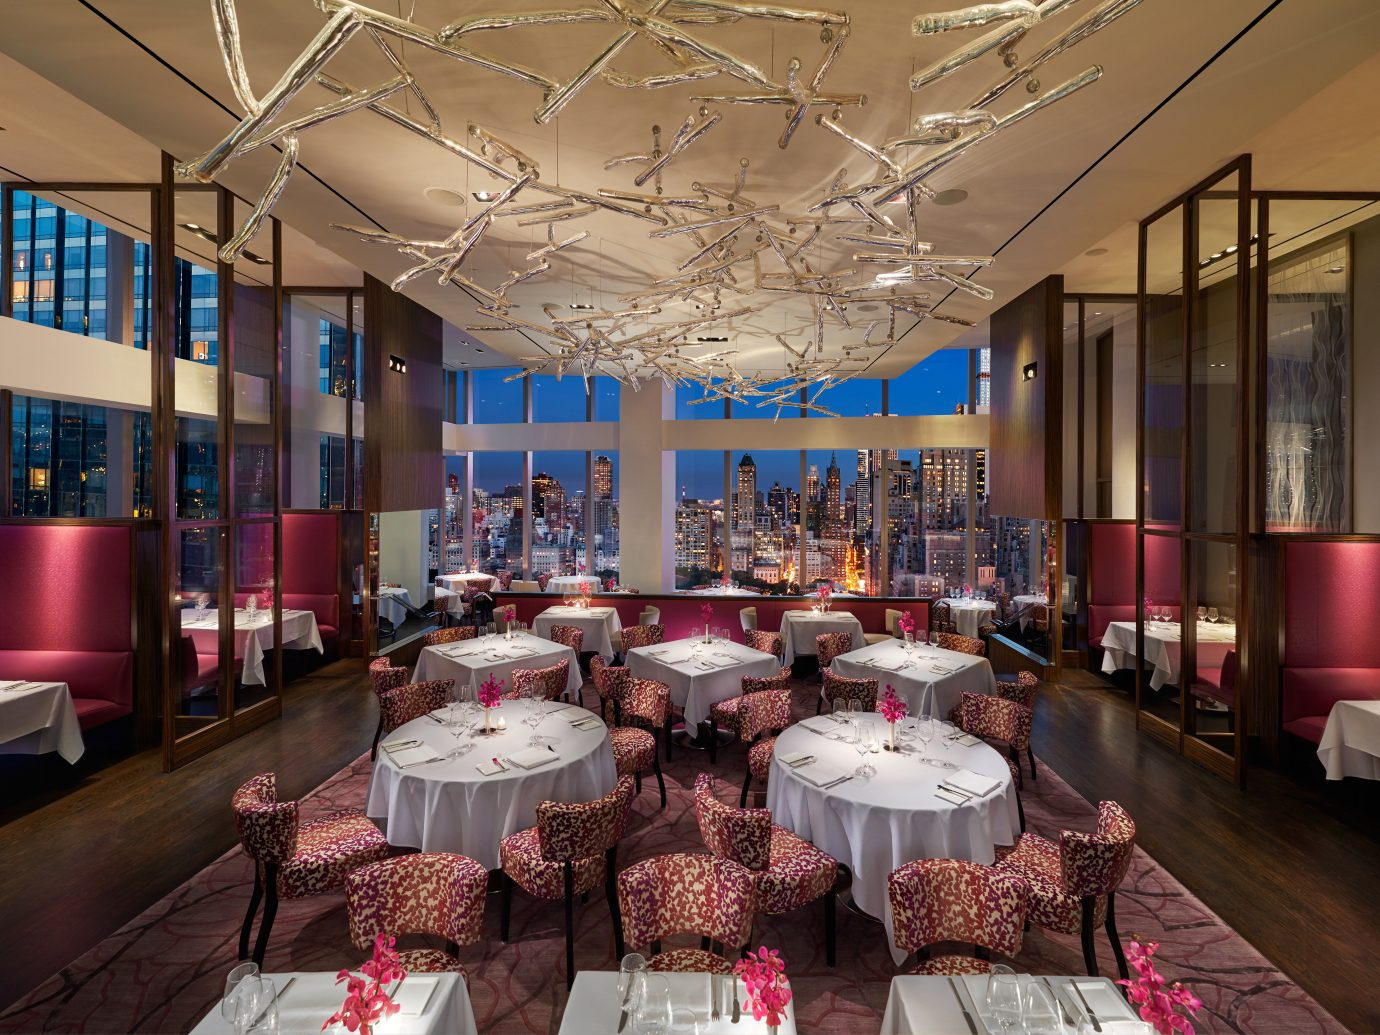 City Dining Drink Eat Elegant Food + Drink Hotels Luxury Trip Ideas indoor ceiling floor function hall meal ballroom interior design restaurant wedding reception estate Lobby banquet convention center room several